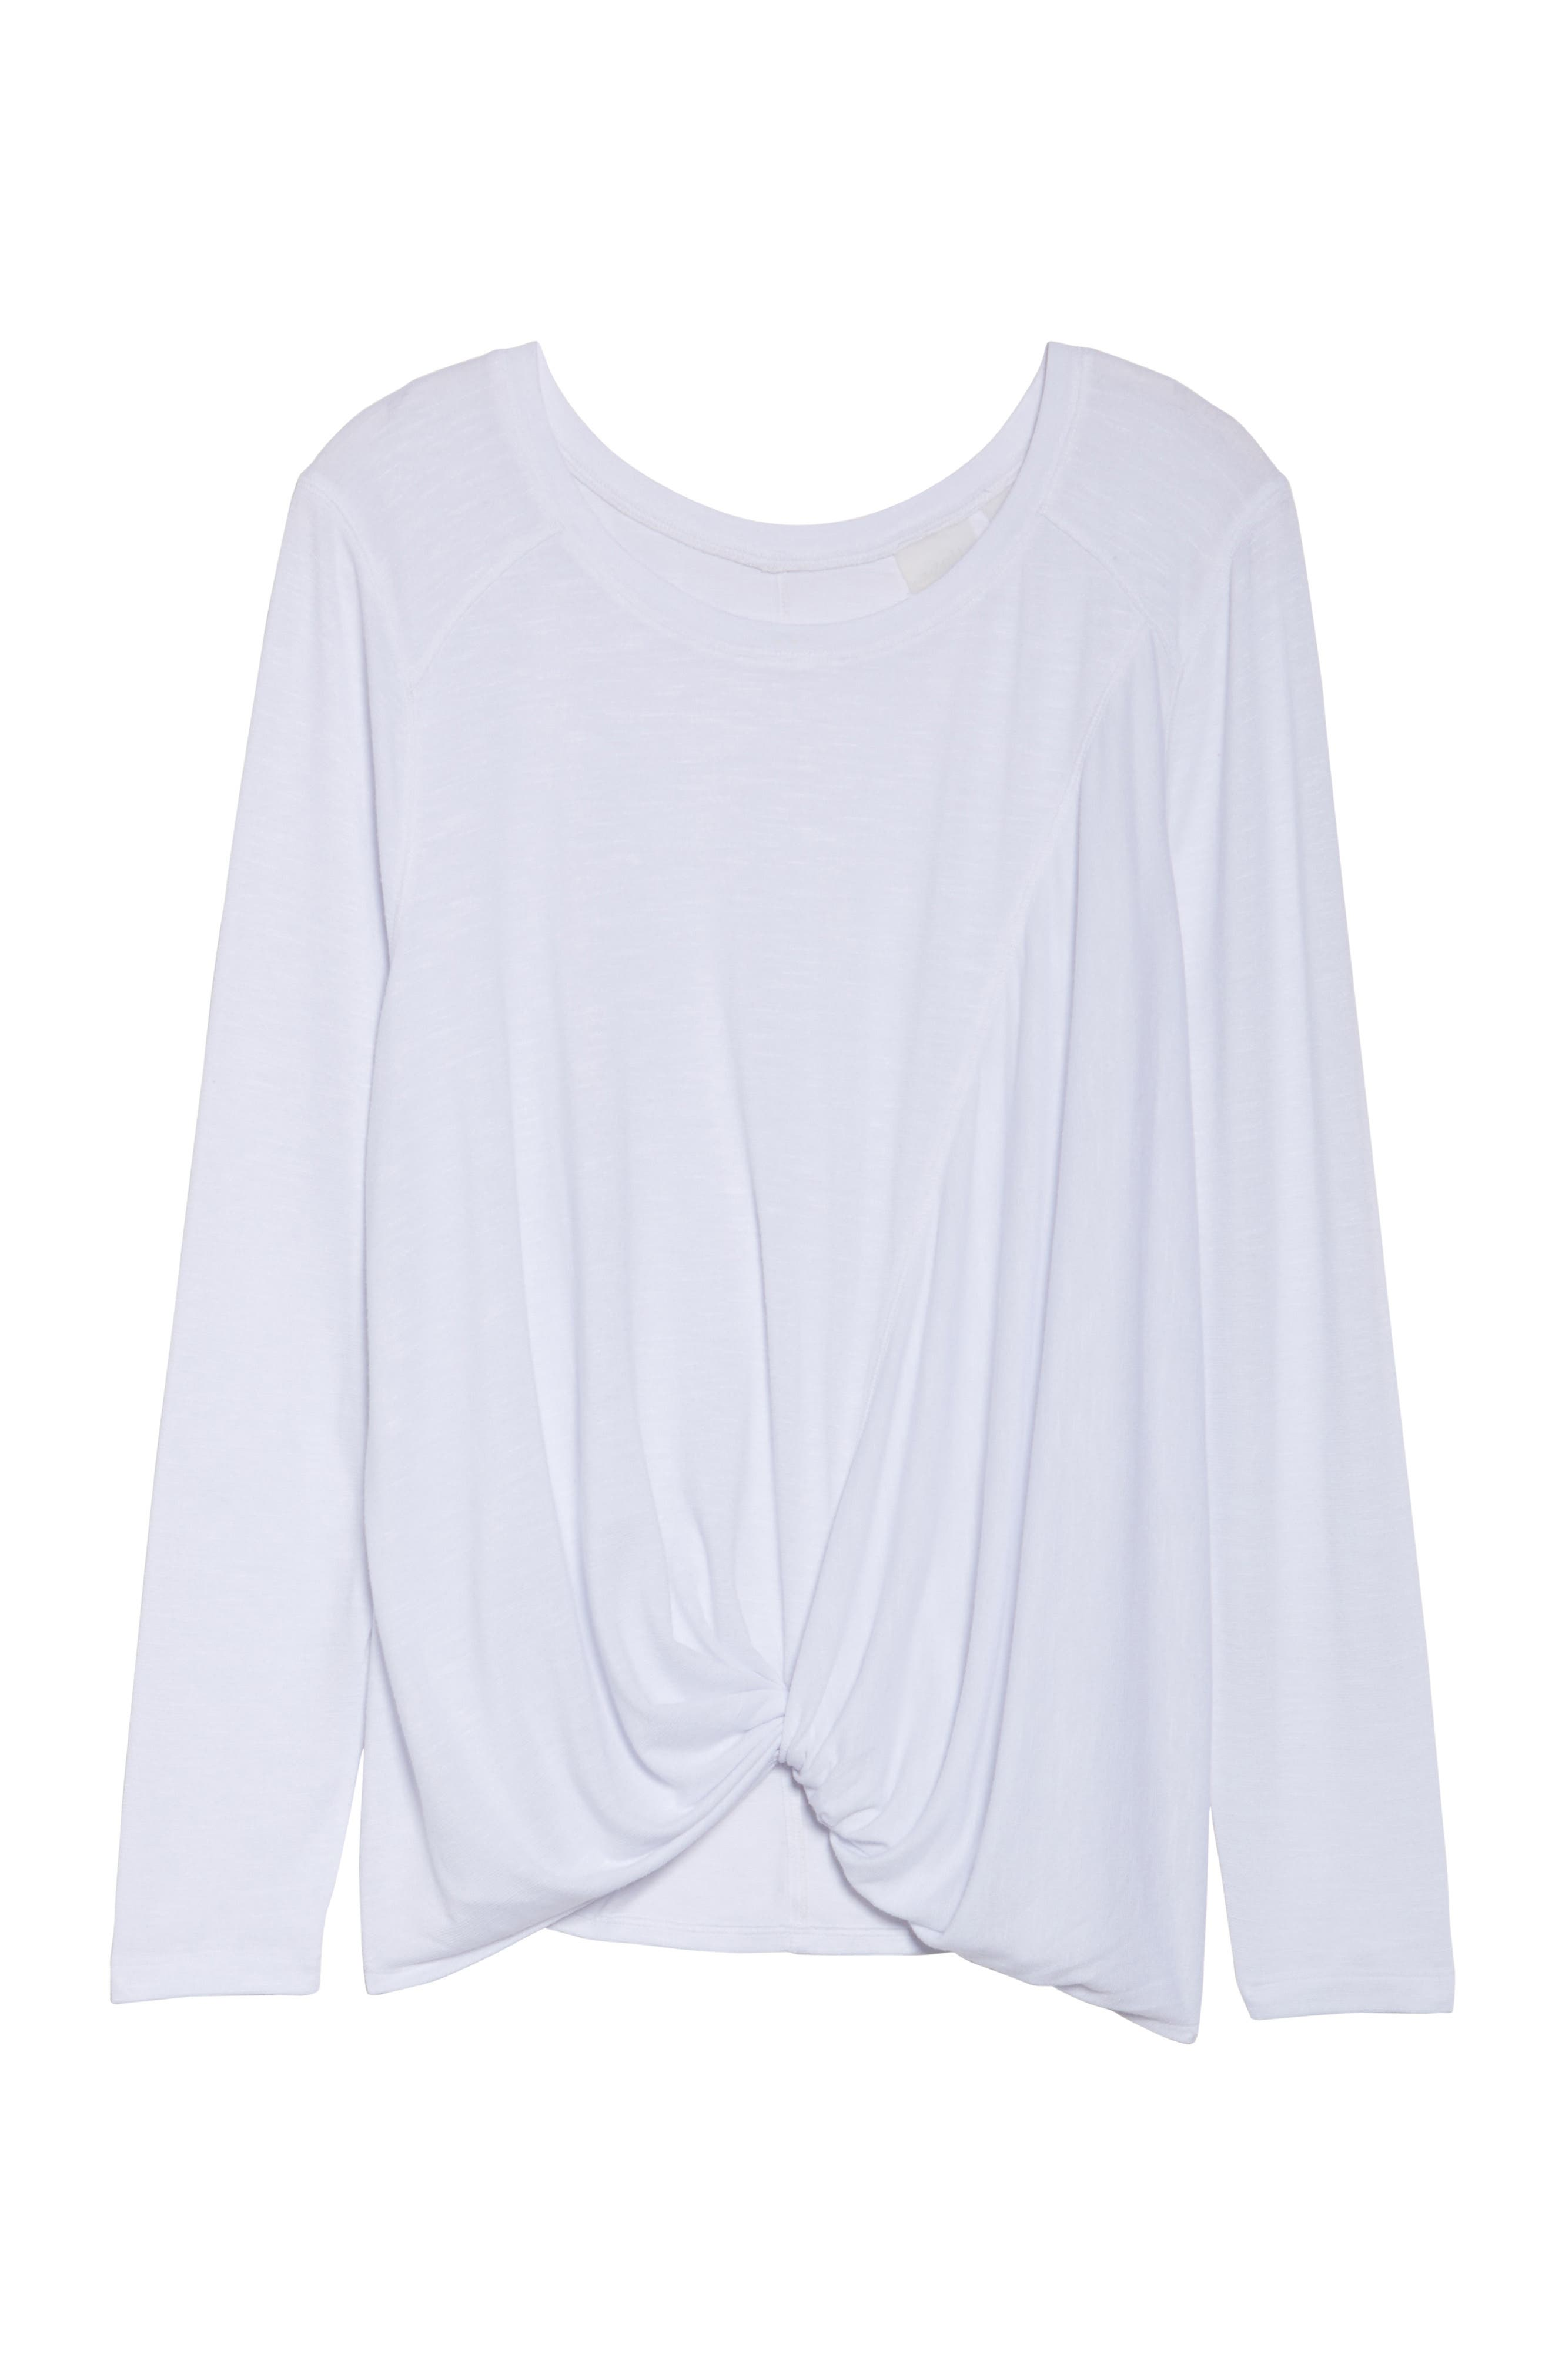 'Twisty Turn' Long Sleeve Tee,                         Main,                         color, White